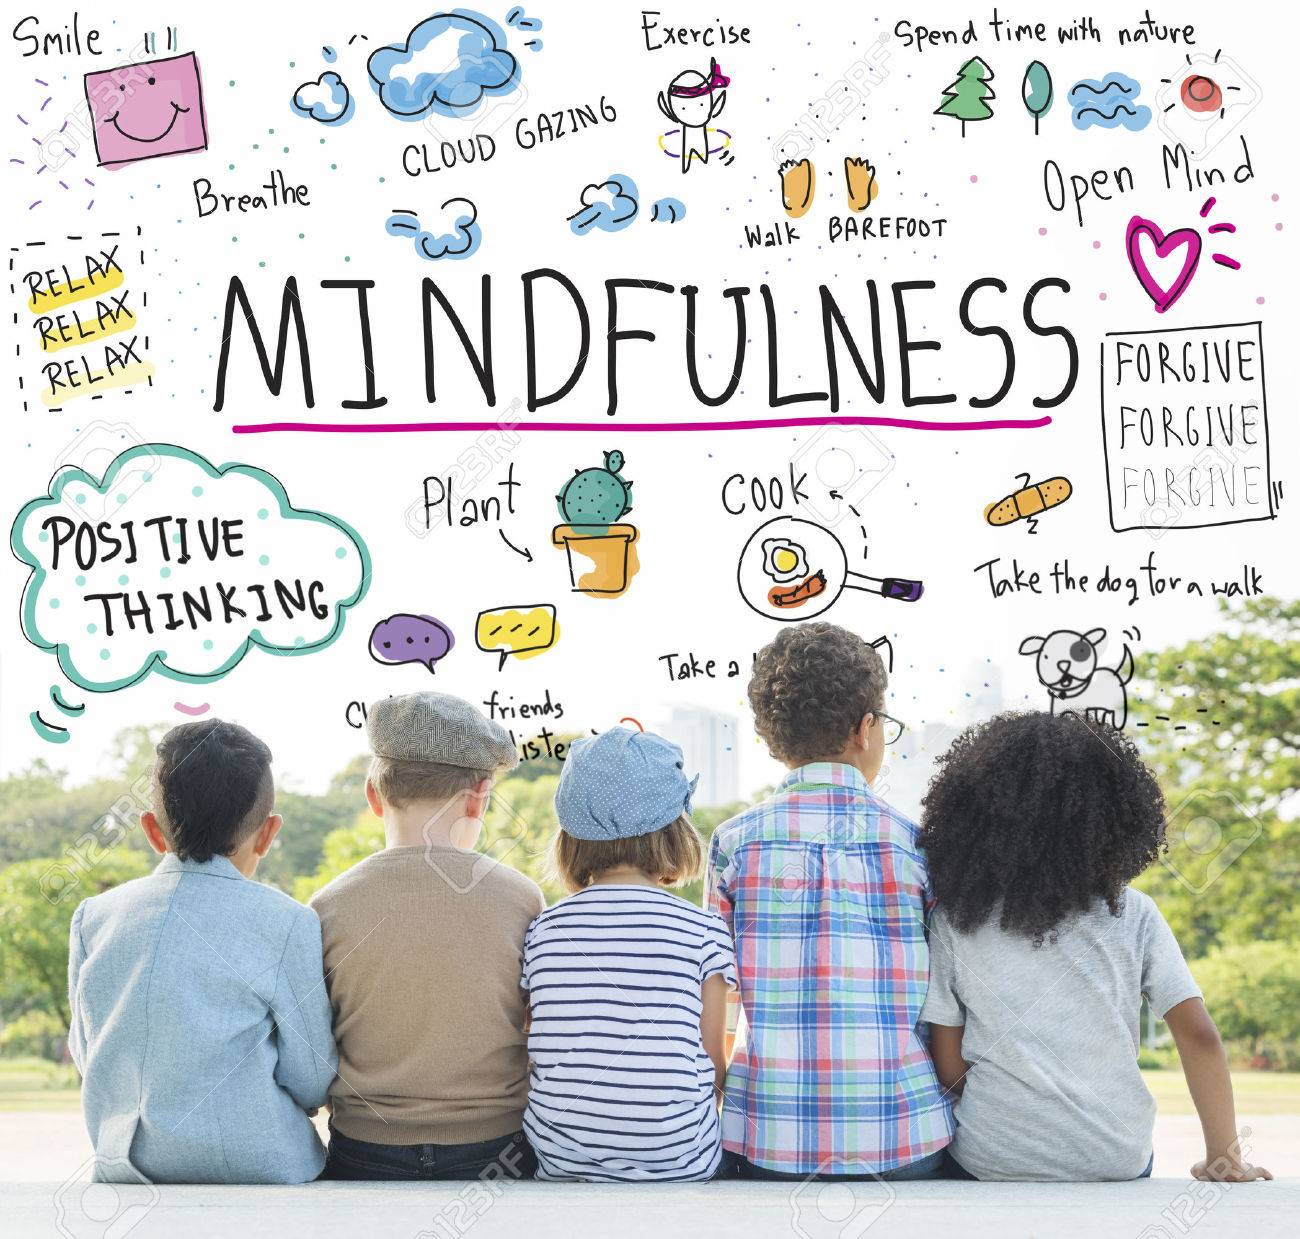 Mindfulness Optimisme Relax Harmony Concept Banque d'images - 62068068